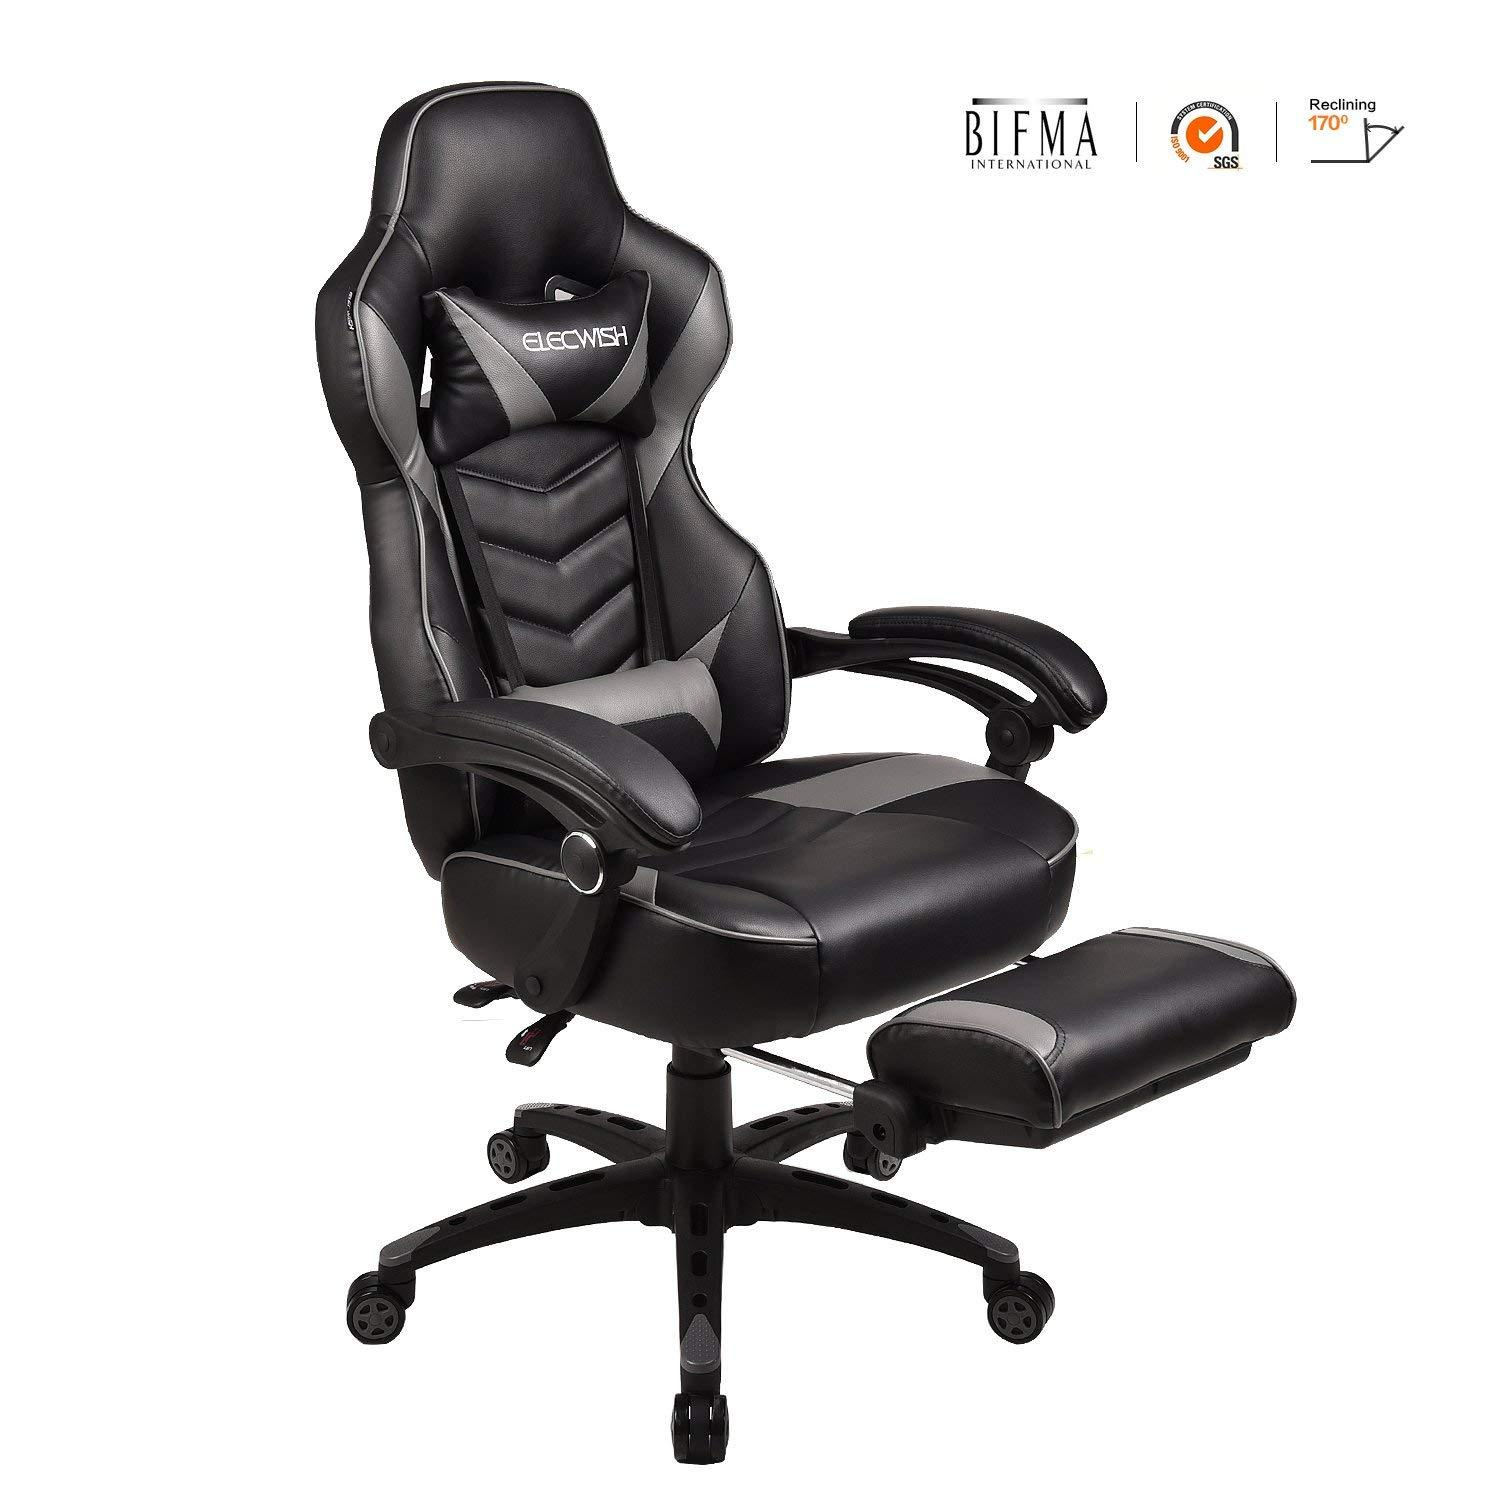 ergonomic rocking chairs reclining camping gaming chair computers laptop home furniture